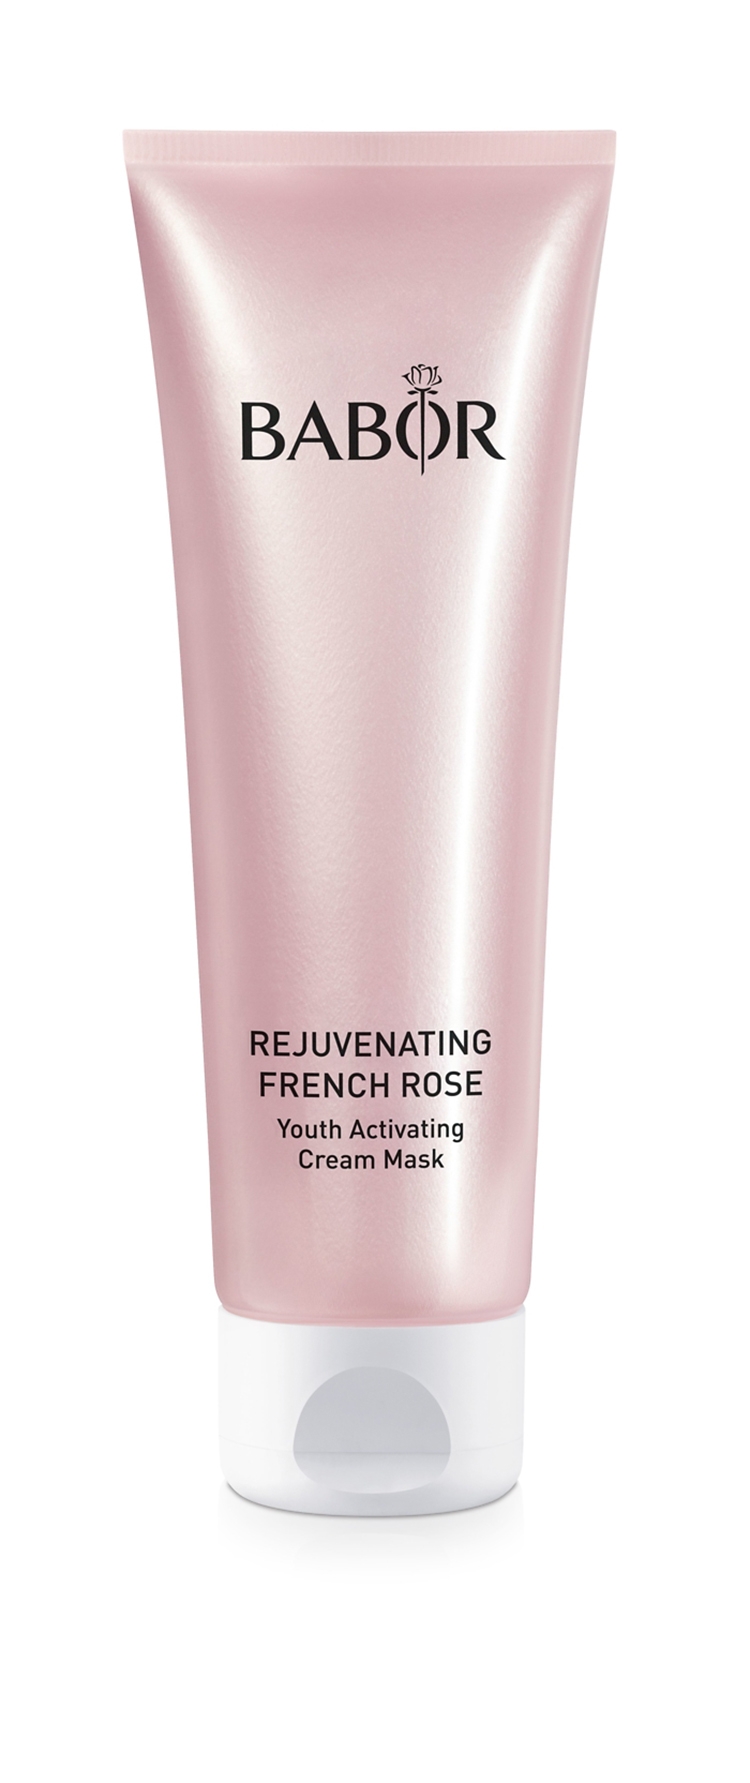 rosefarbene Babor Cremetube rejuvenating french rose youth activating cream mask